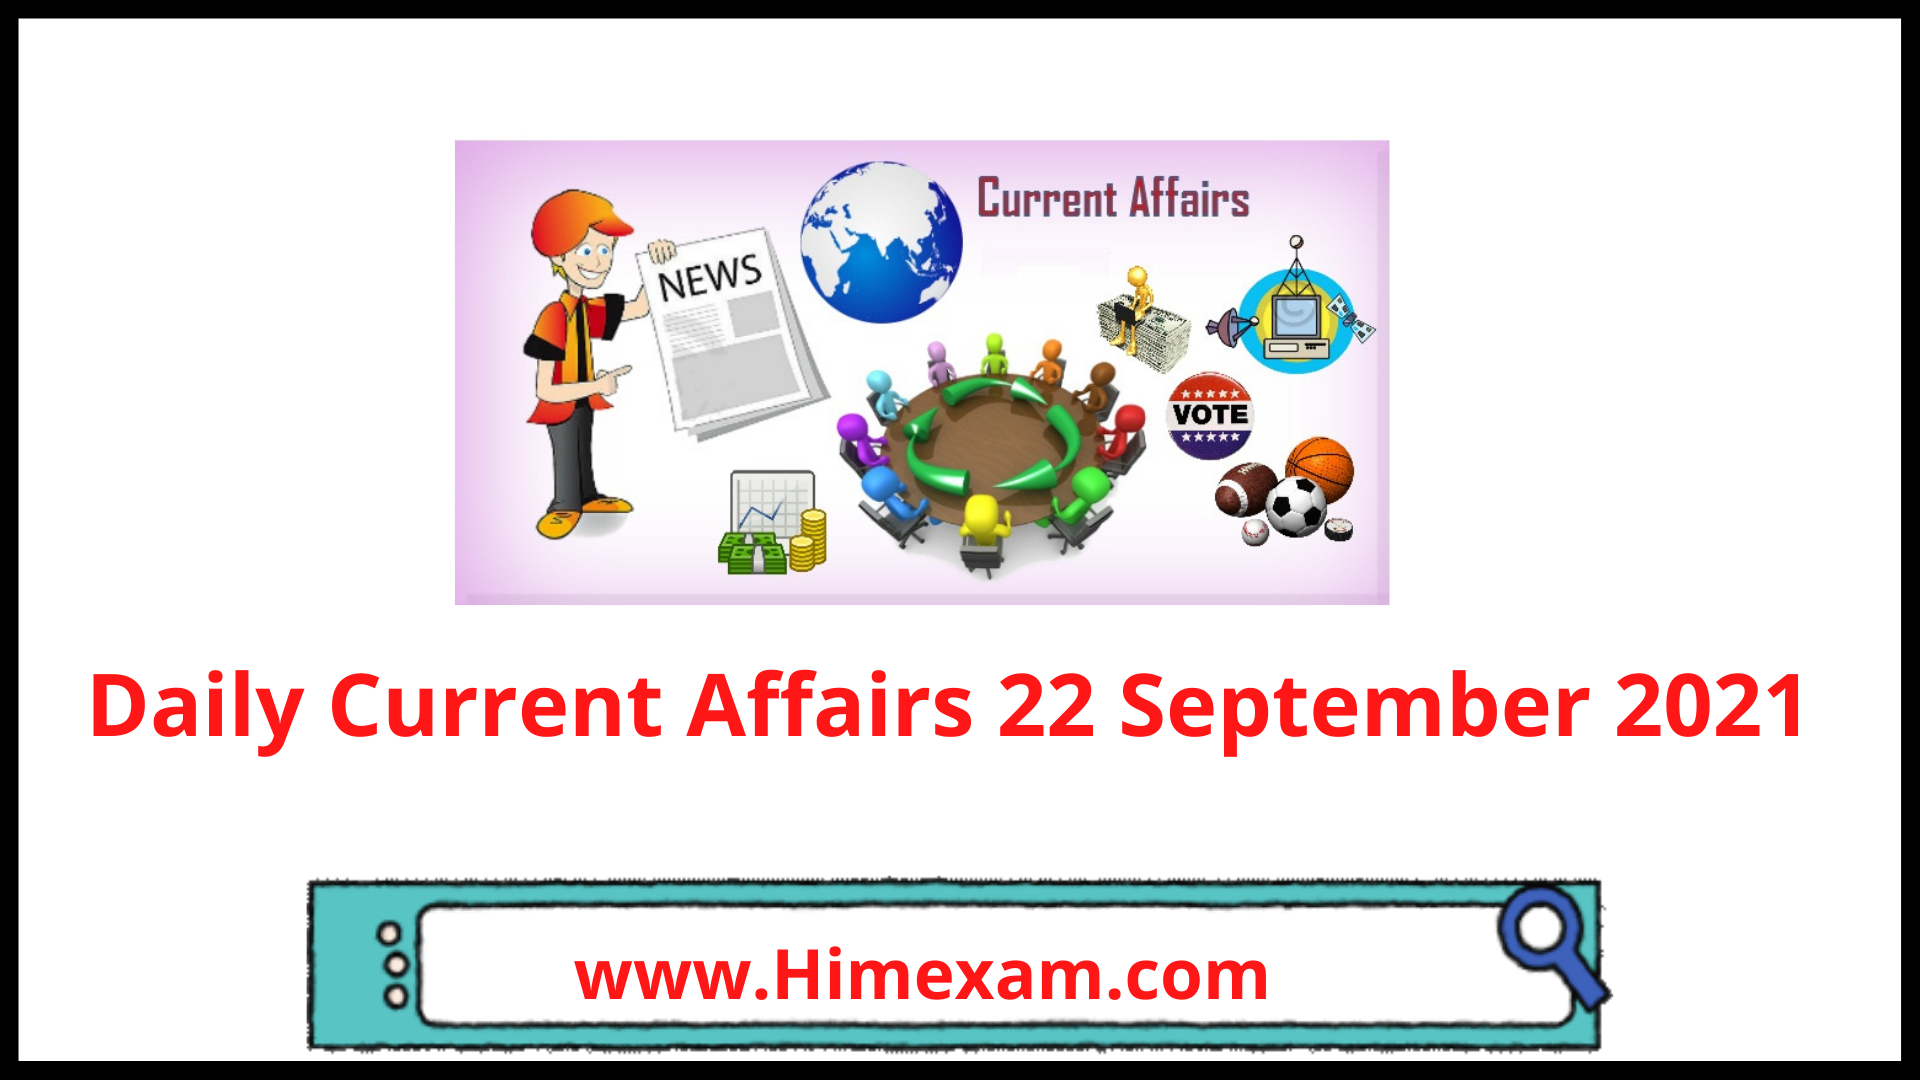 Daily Current Affairs 22 September 2021